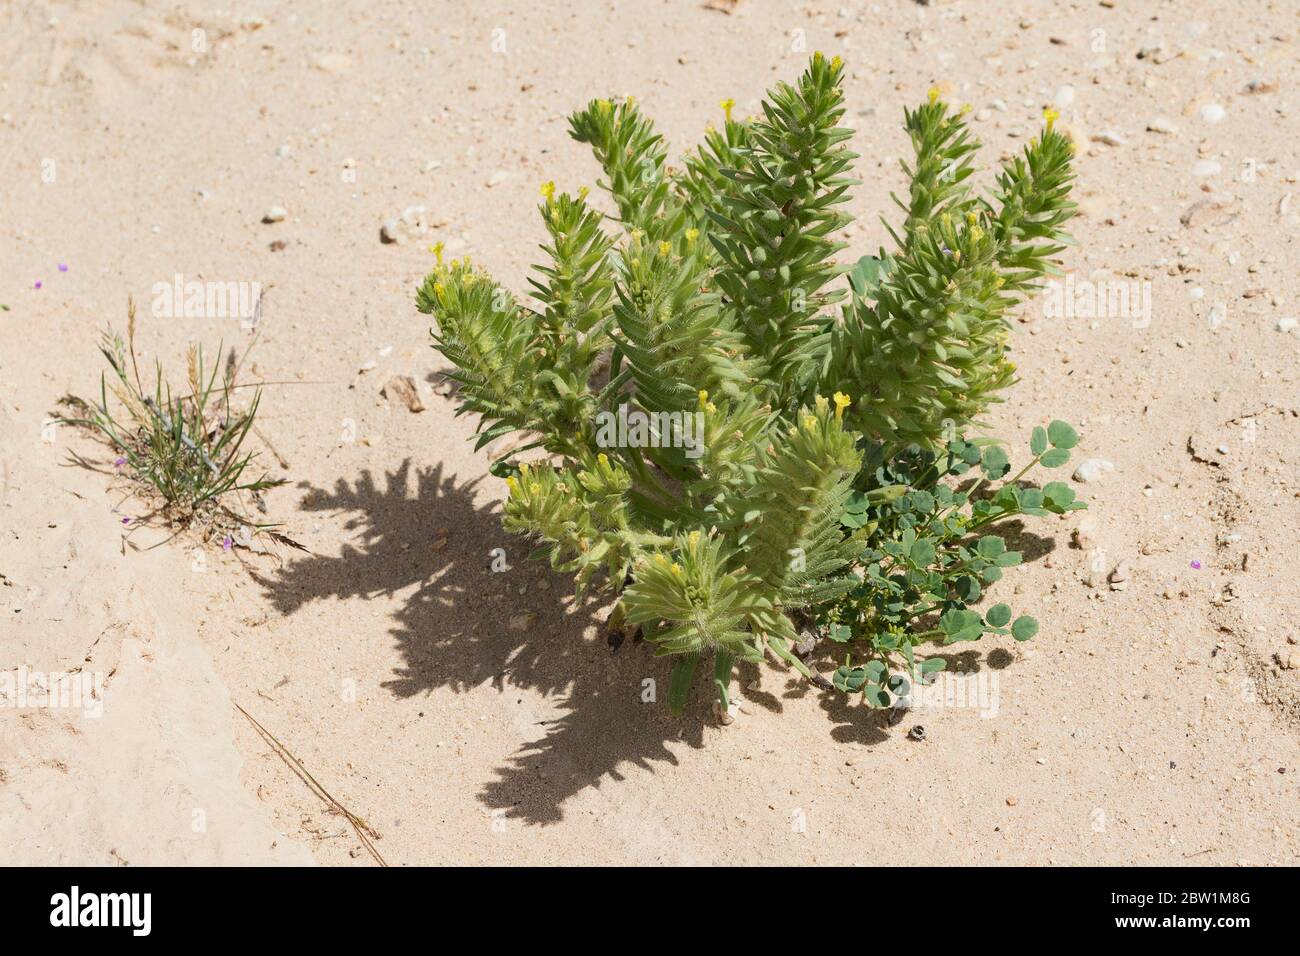 Arnebia linearifolia a plant of the borage family growing in nature next to yellow clover in a dry stream bed in the makhtesh ramon crater in israel Stock Photo